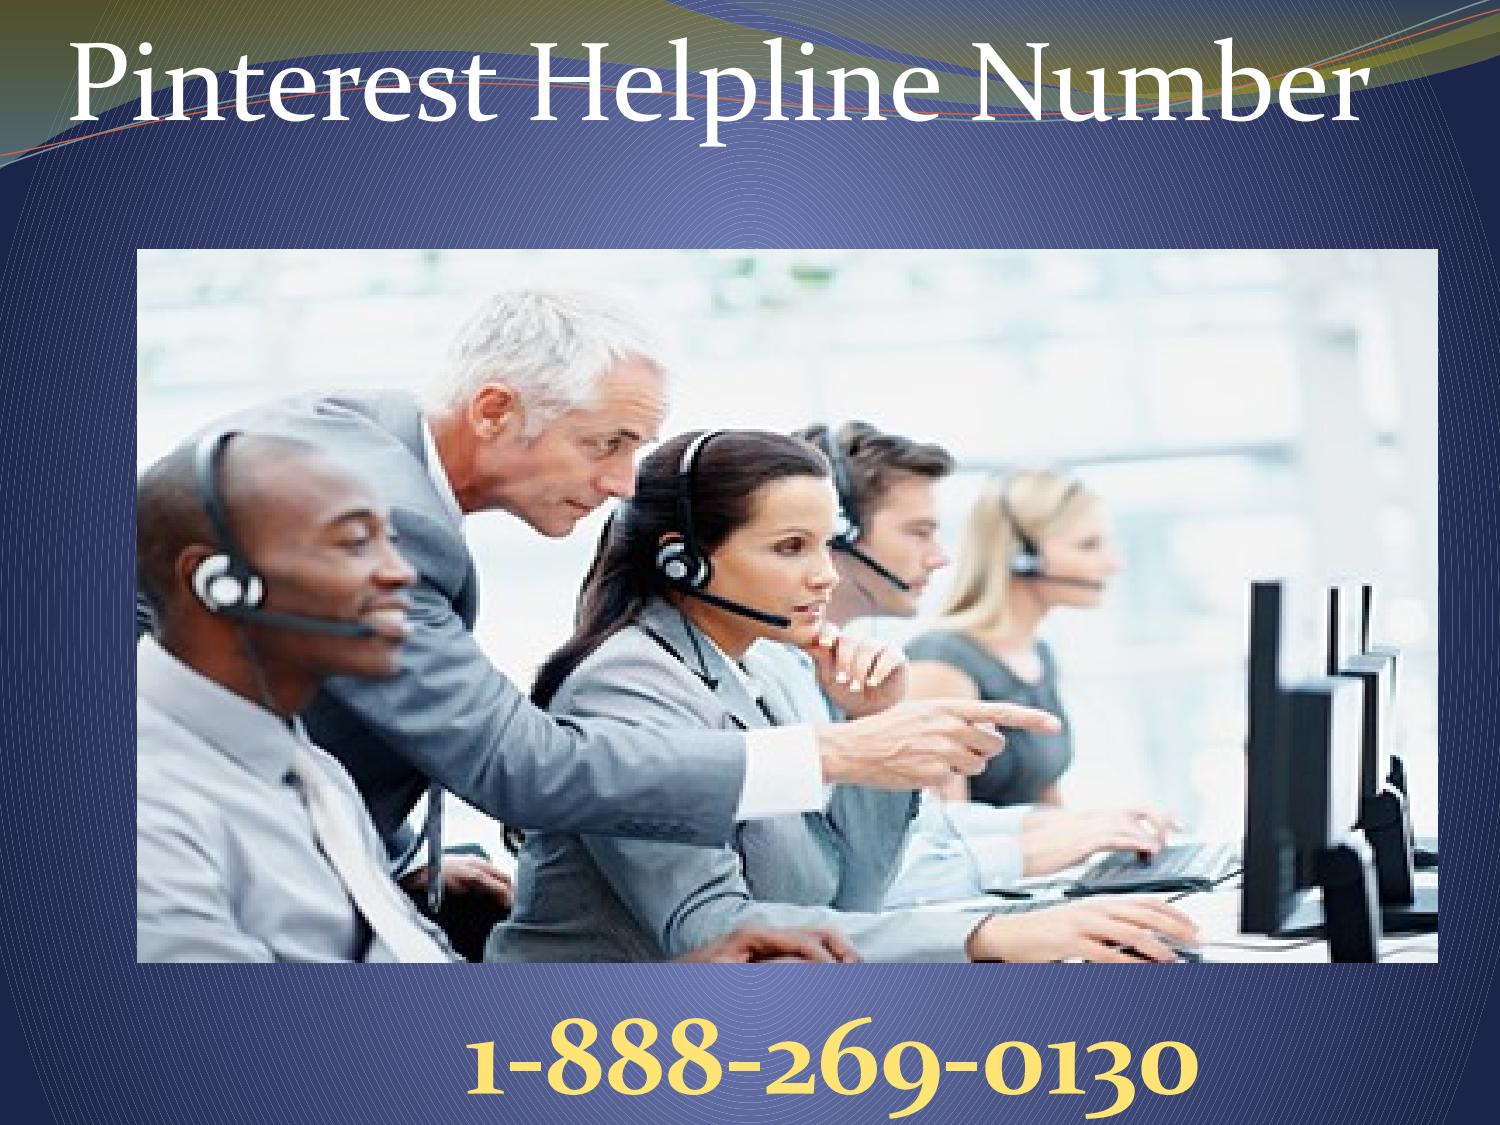 Pinterest helpline number 1888 269 130 by sweta - issuu